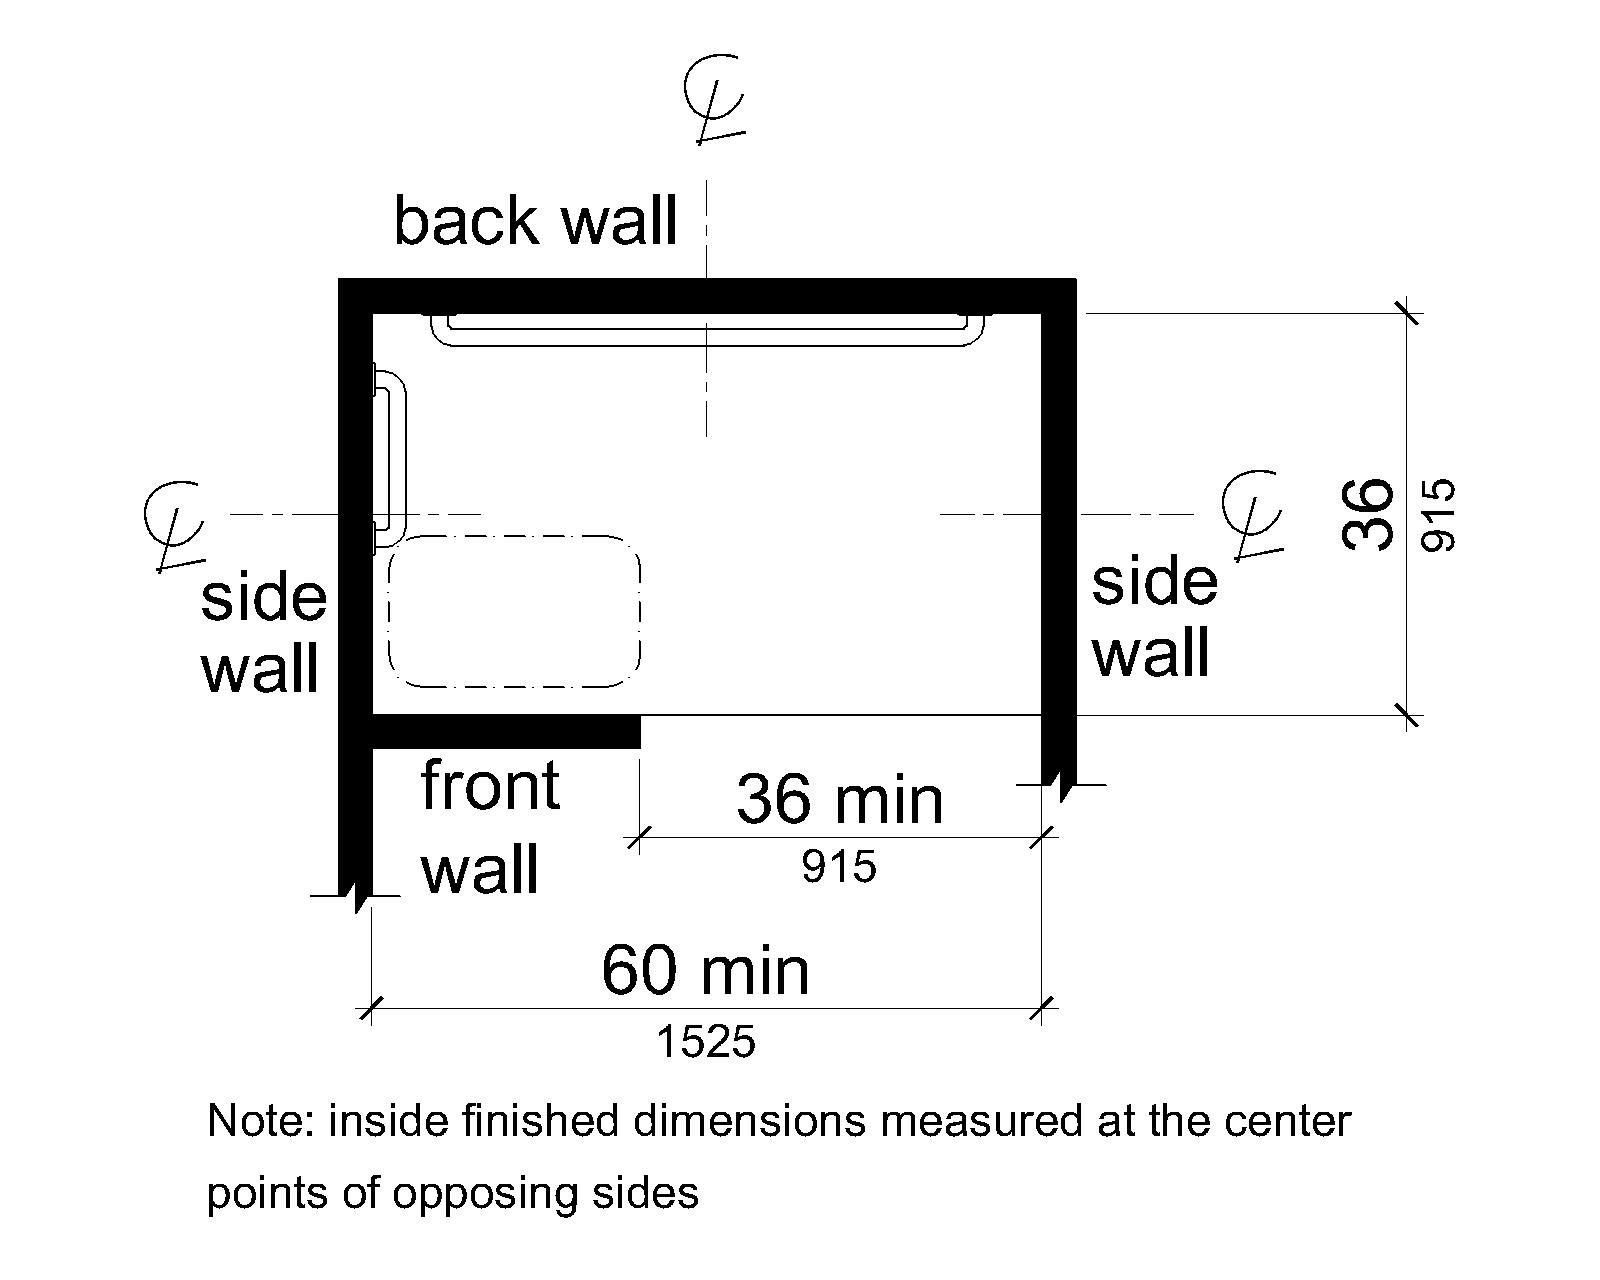 A plan view shows the shower compartment is 36 inches (915 mm) wide absolute and 60 inches (1525 mm) deep minimum. A 36 inch (915 mm) wide minimum entry is provided on one long wall. A seat is provided adjacent to the entry on the same wall.